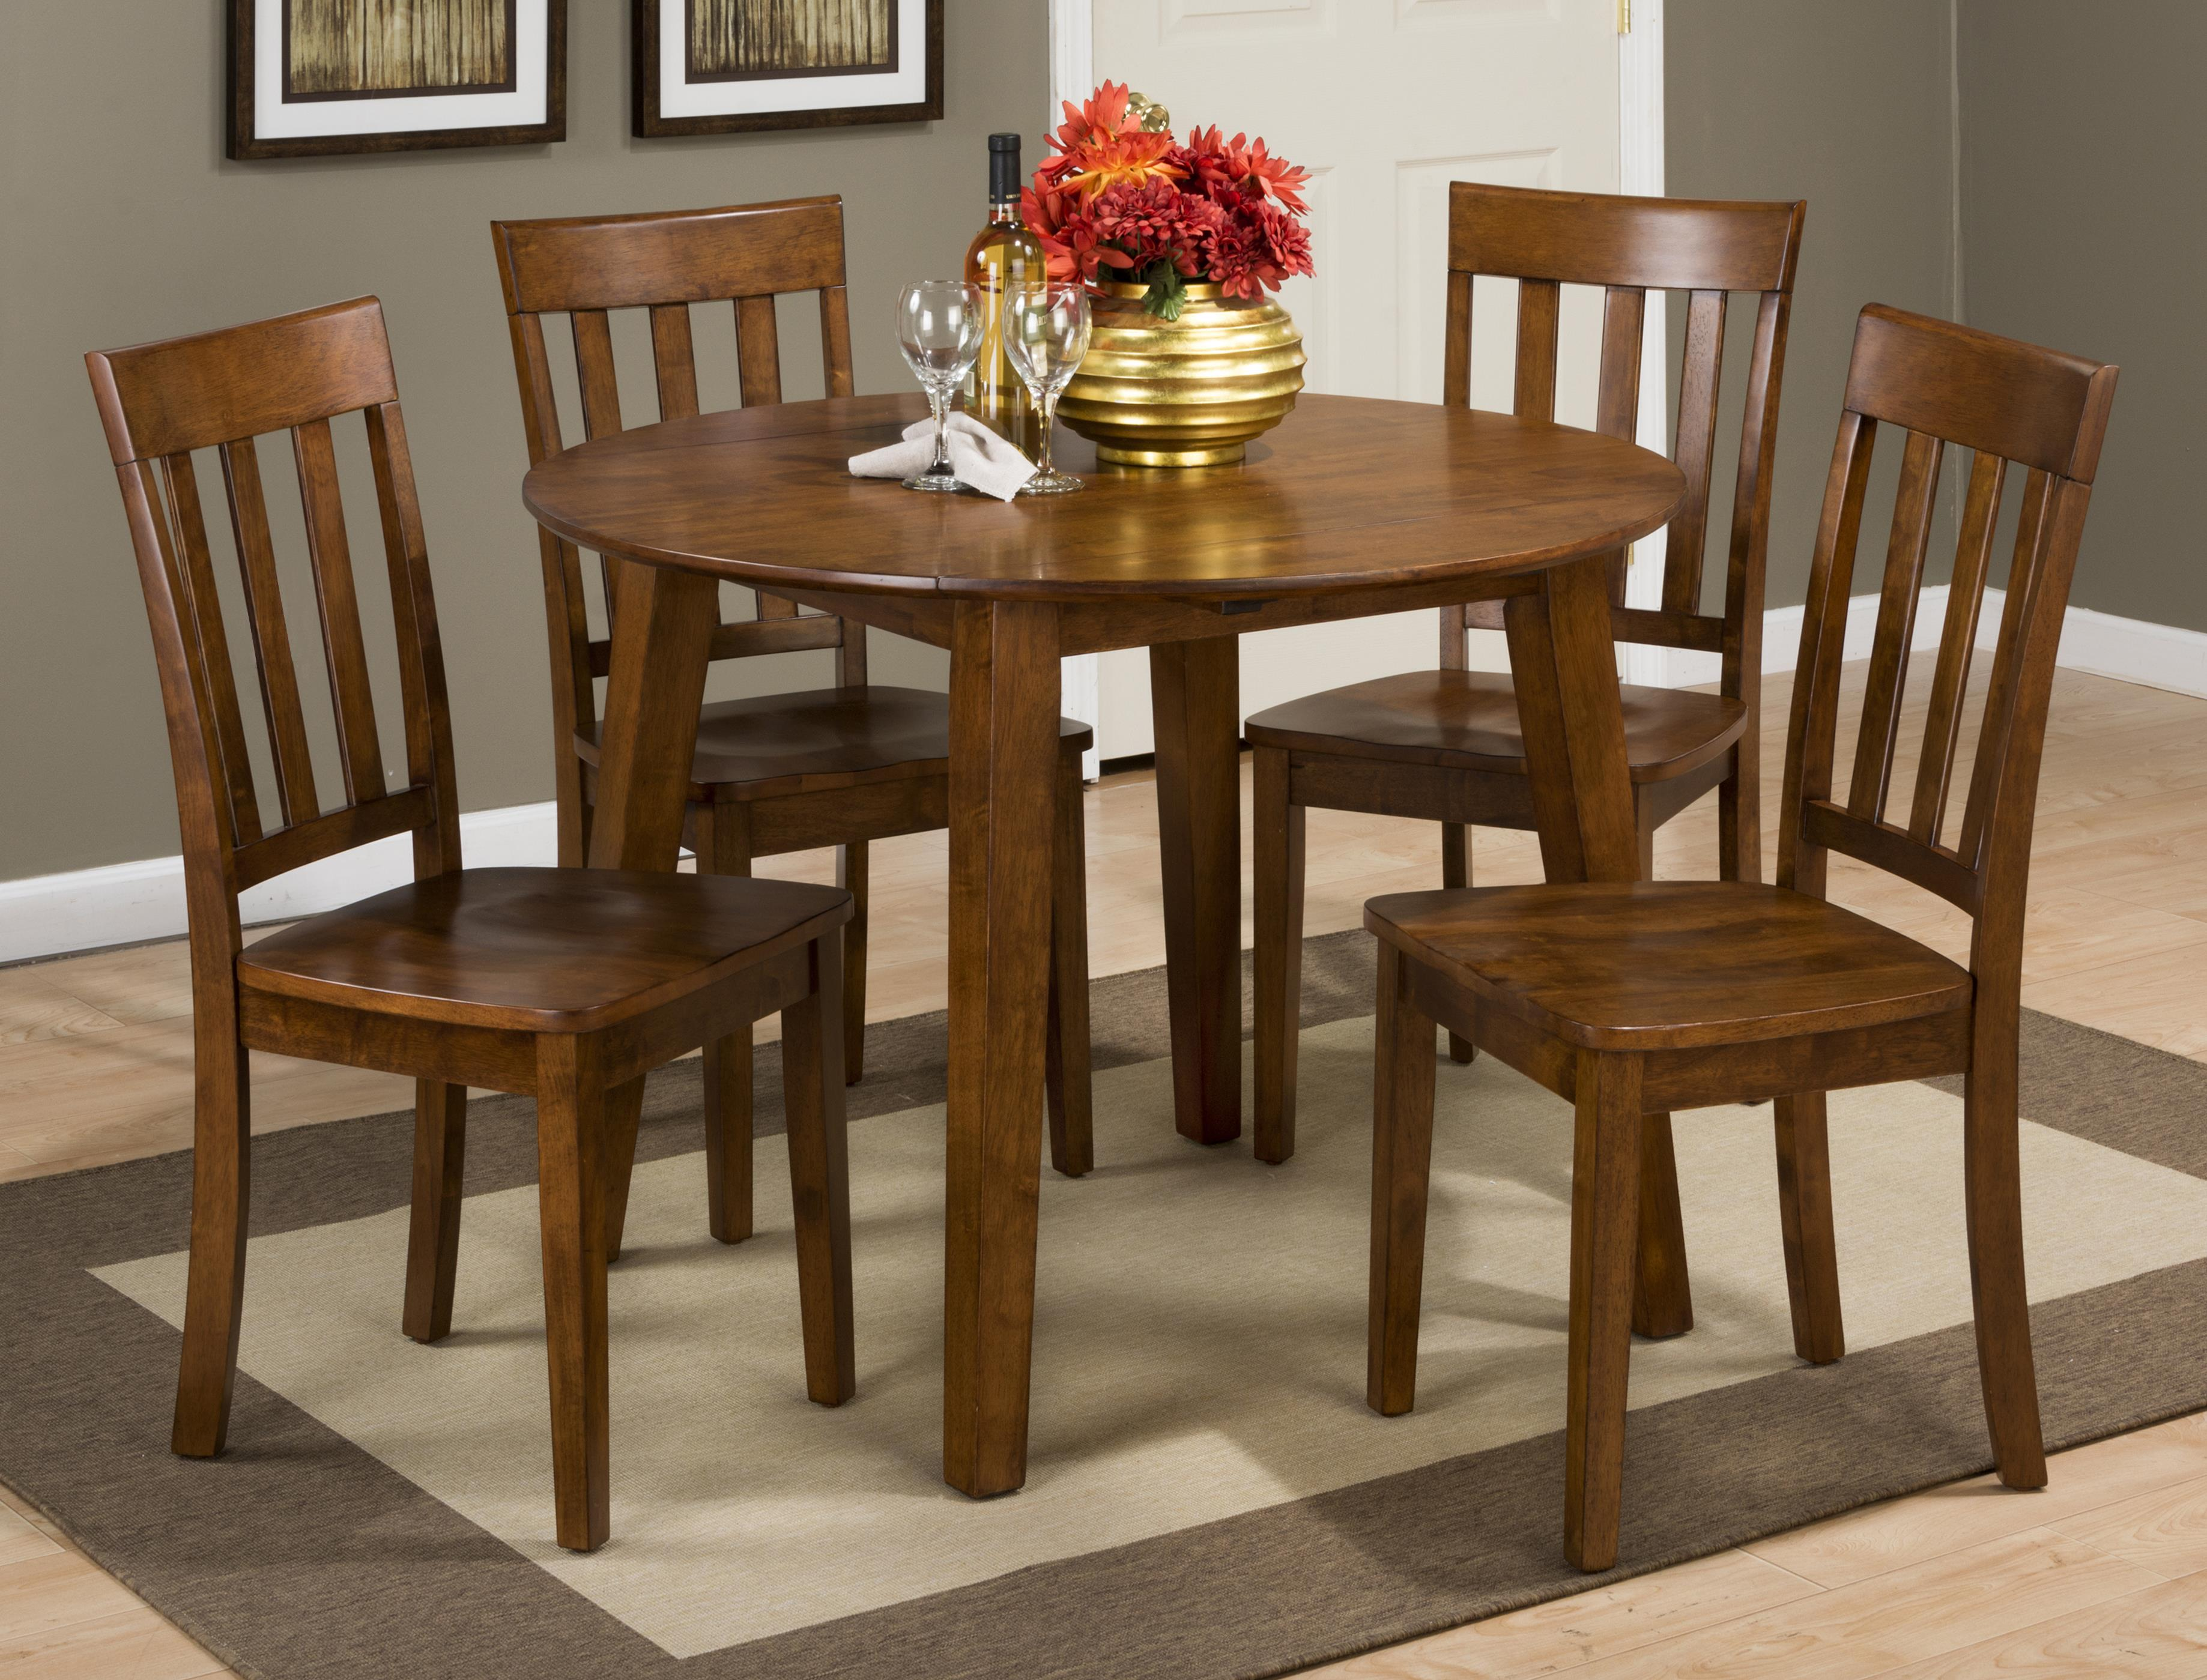 Simplicity Round Table and 4 Chair Set by Jofran at Simply Home by Lindy's